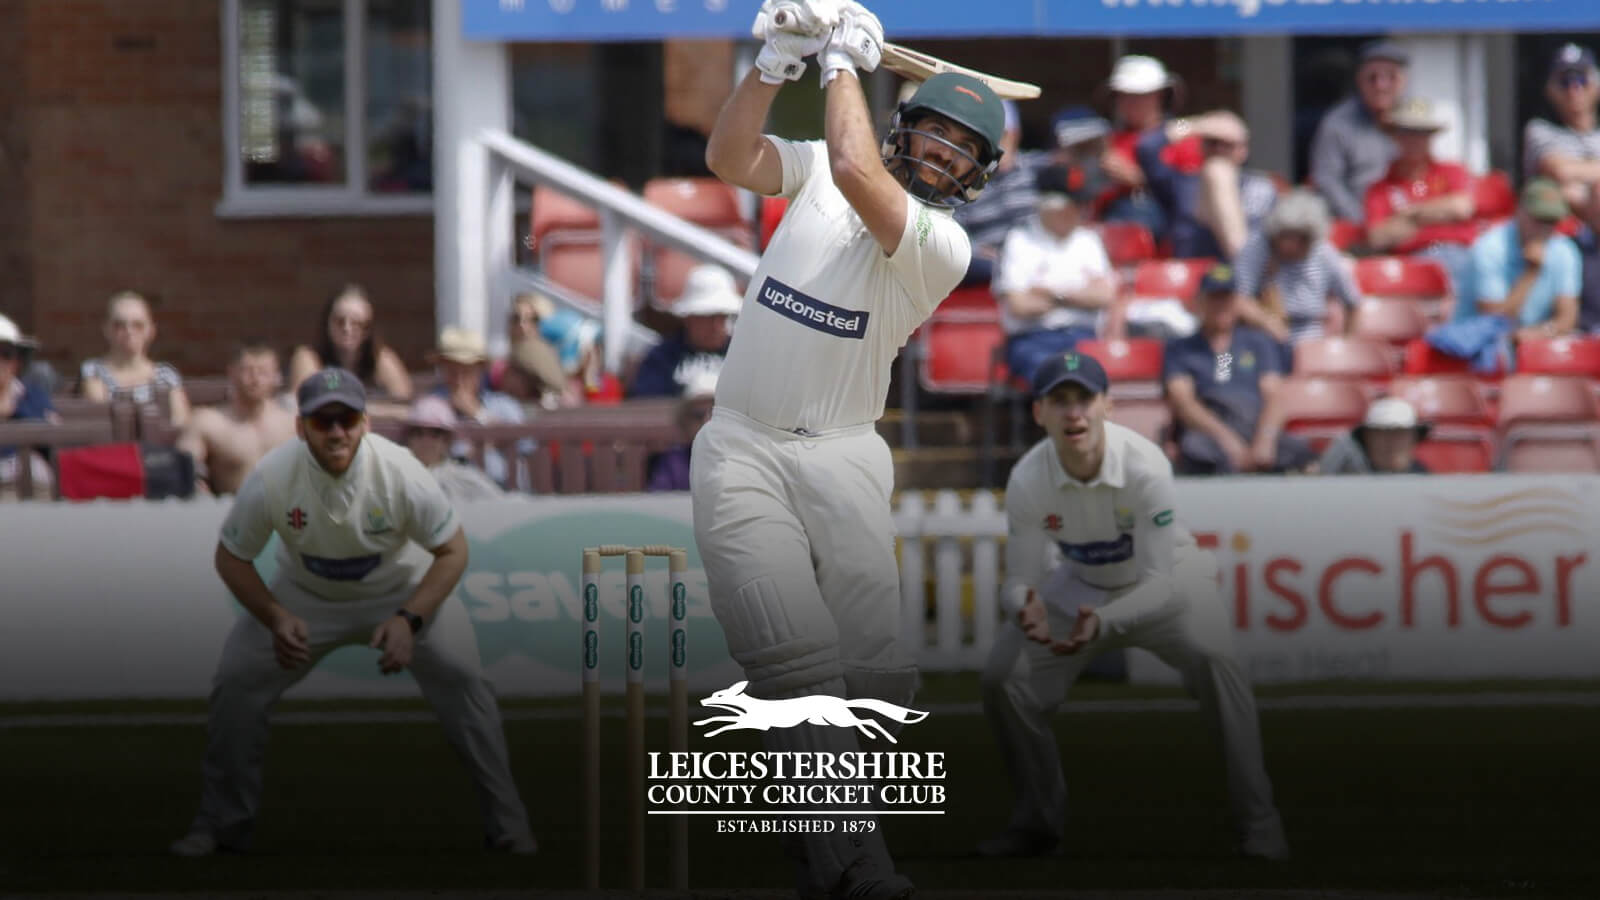 Leicester-Cricket